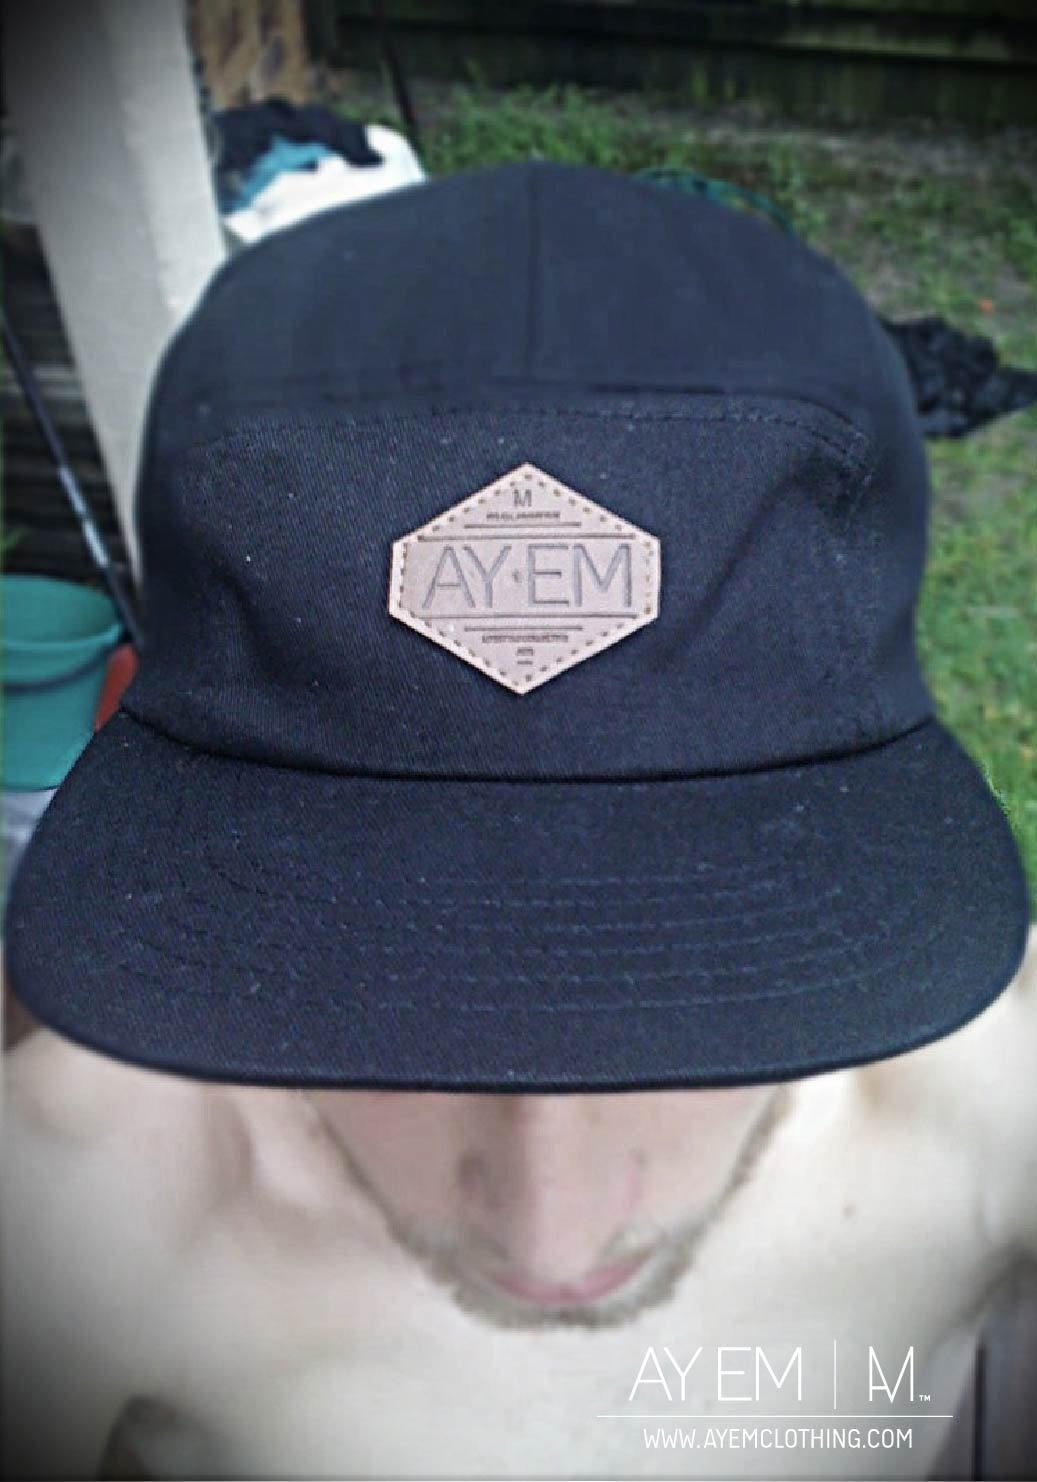 BLACK PANEL  NOW AVAILABLE AT OUR ONLINE STORE WWW.AYEMCLOTHING.COM WWW.AYEMCLOTHING.BIGCARTEL.COM